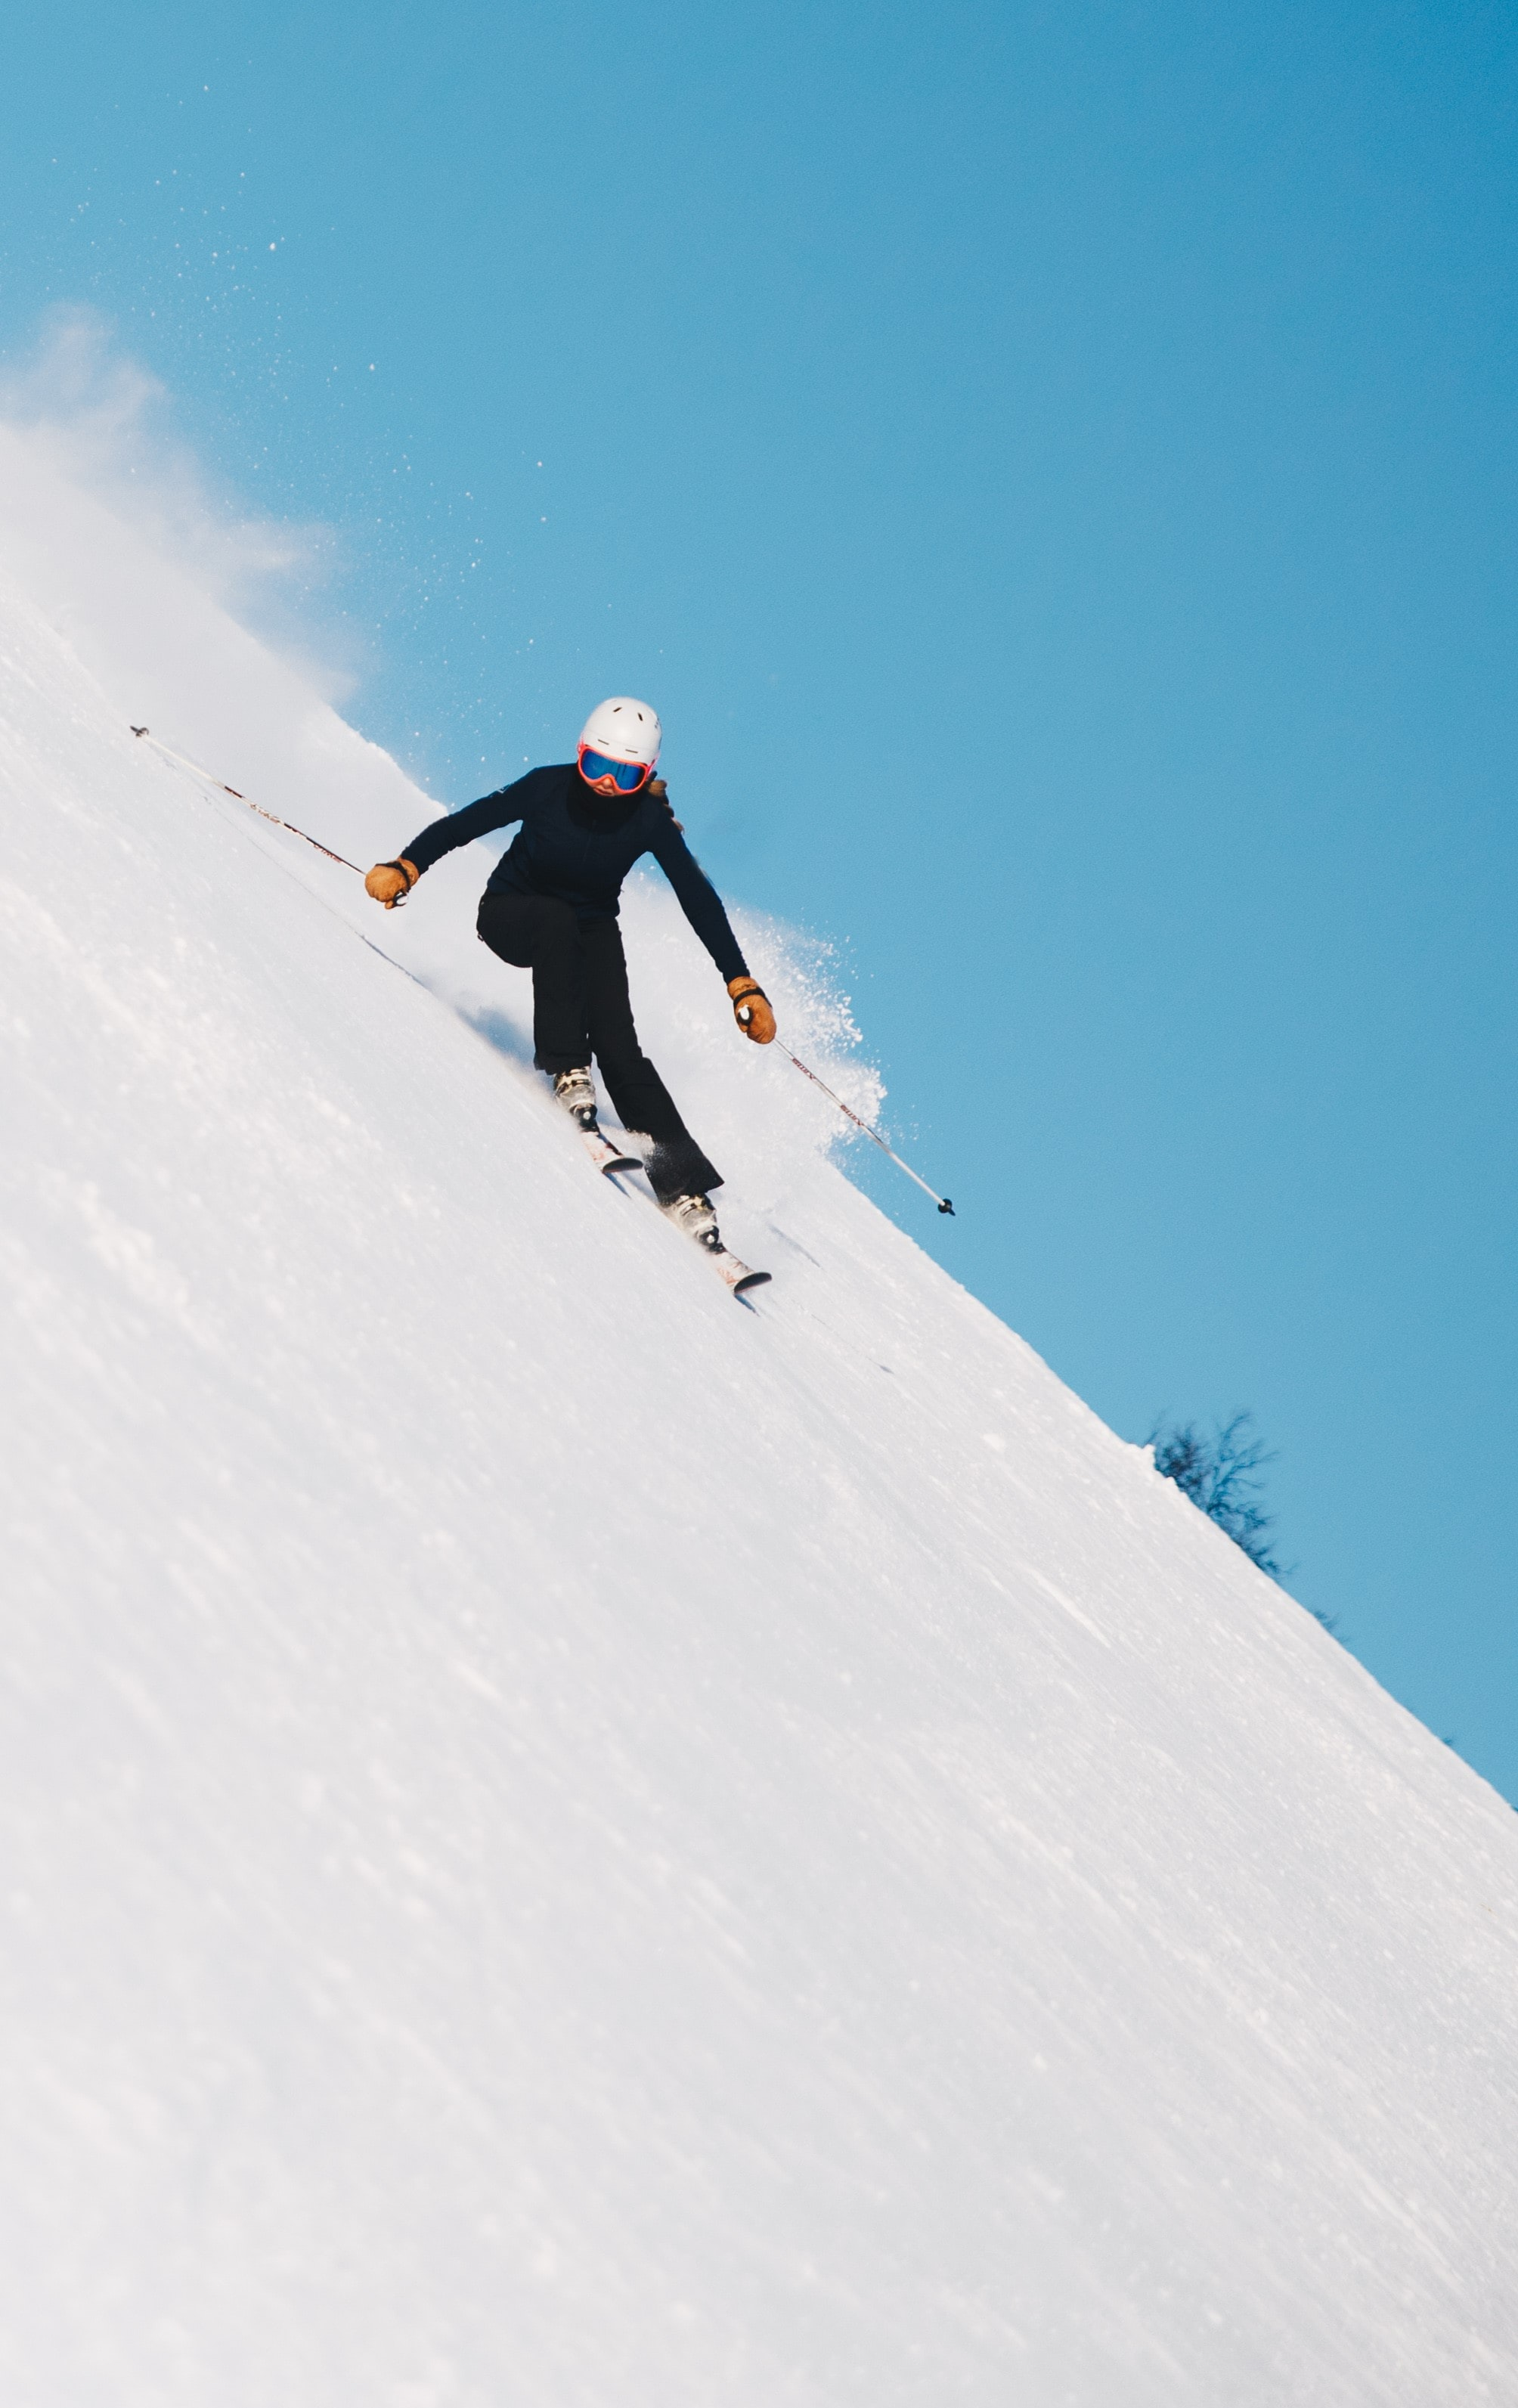 person skiing on snow with gear set